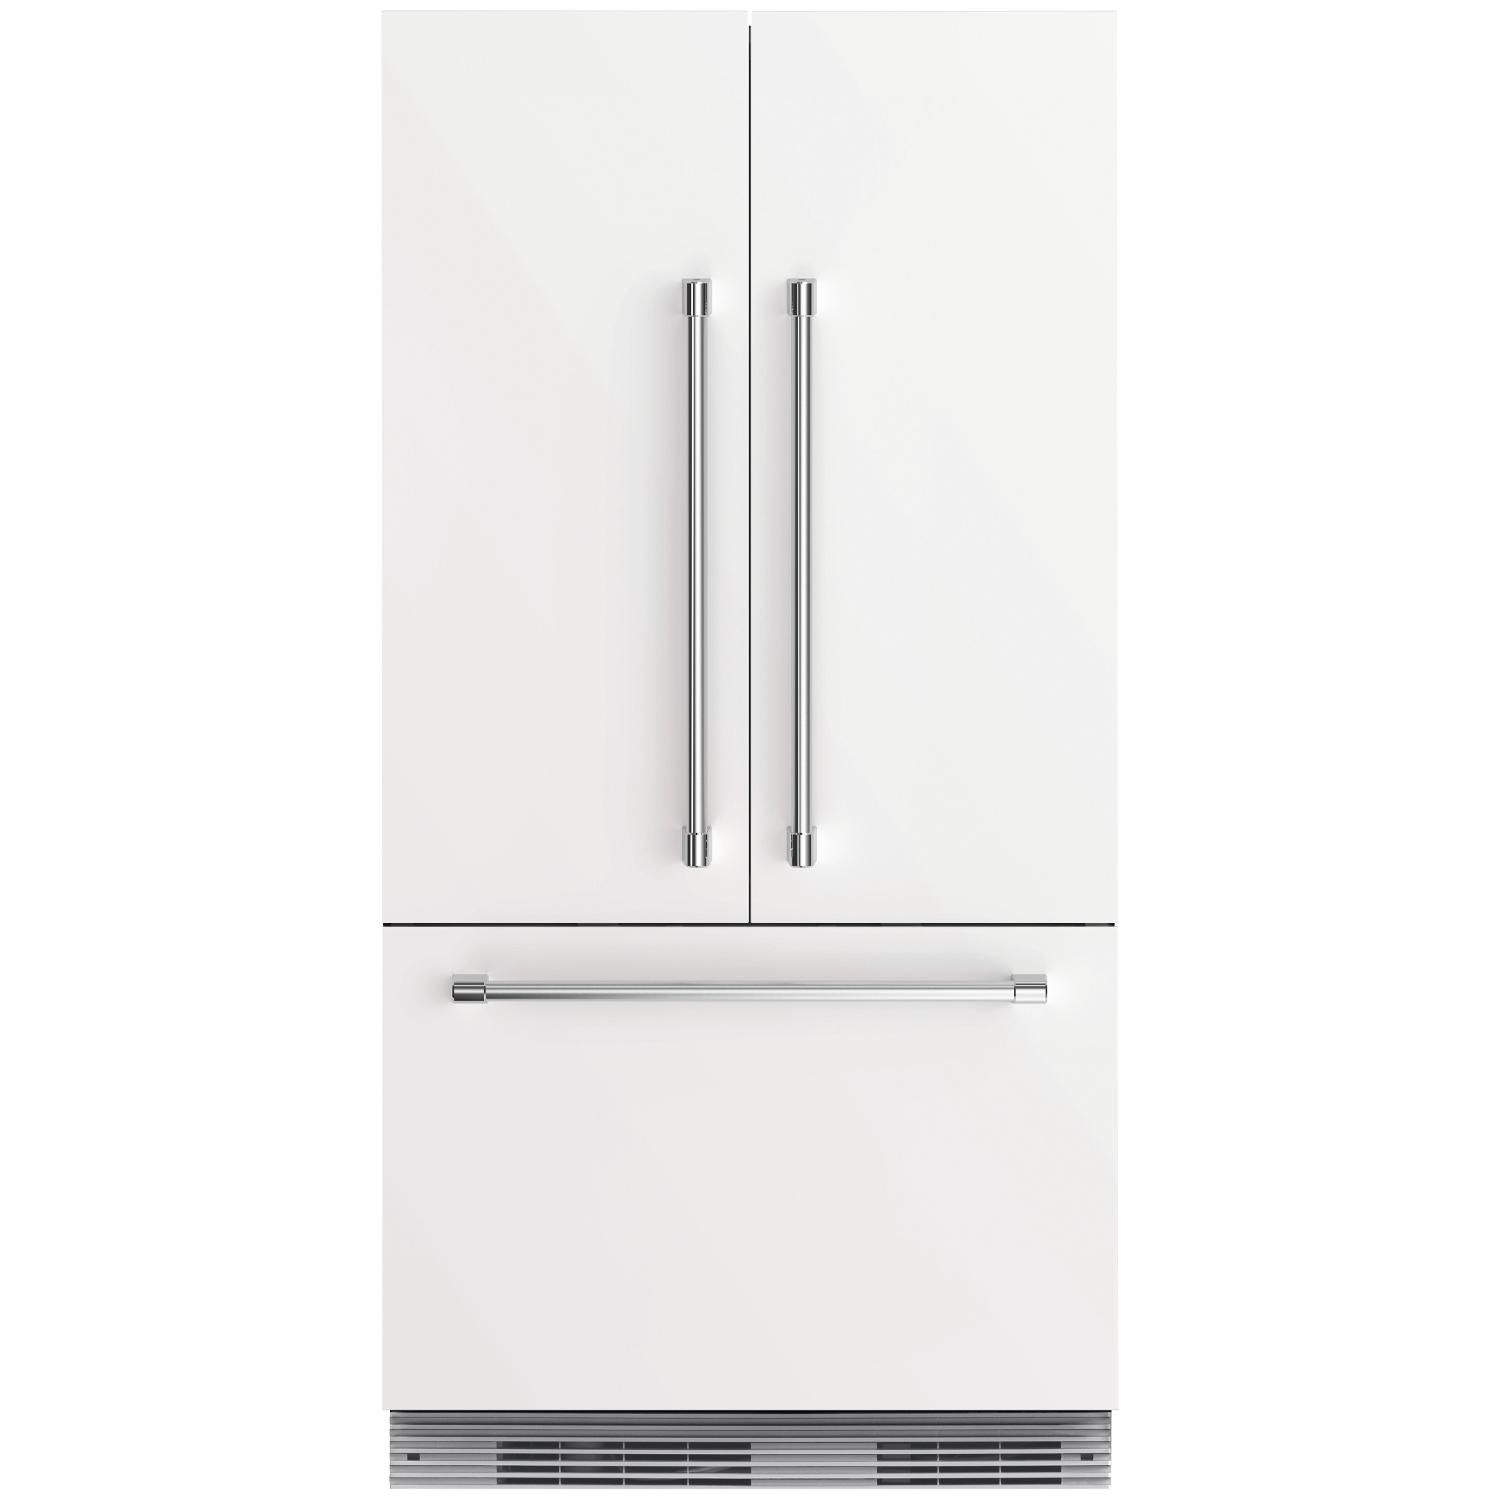 Dcs 72 Inch Panel Ready Built In French Door Refrigerator Rs36a72jc1